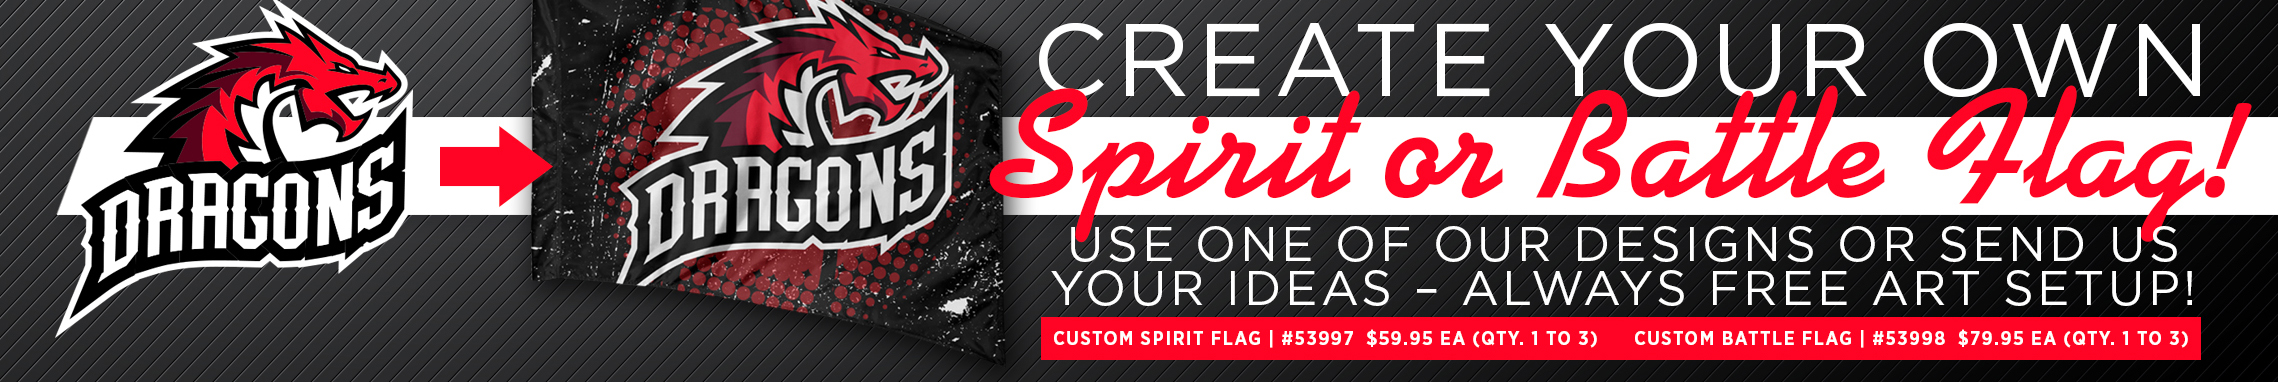 Create Your Own Spirit Flag or Battle Flag